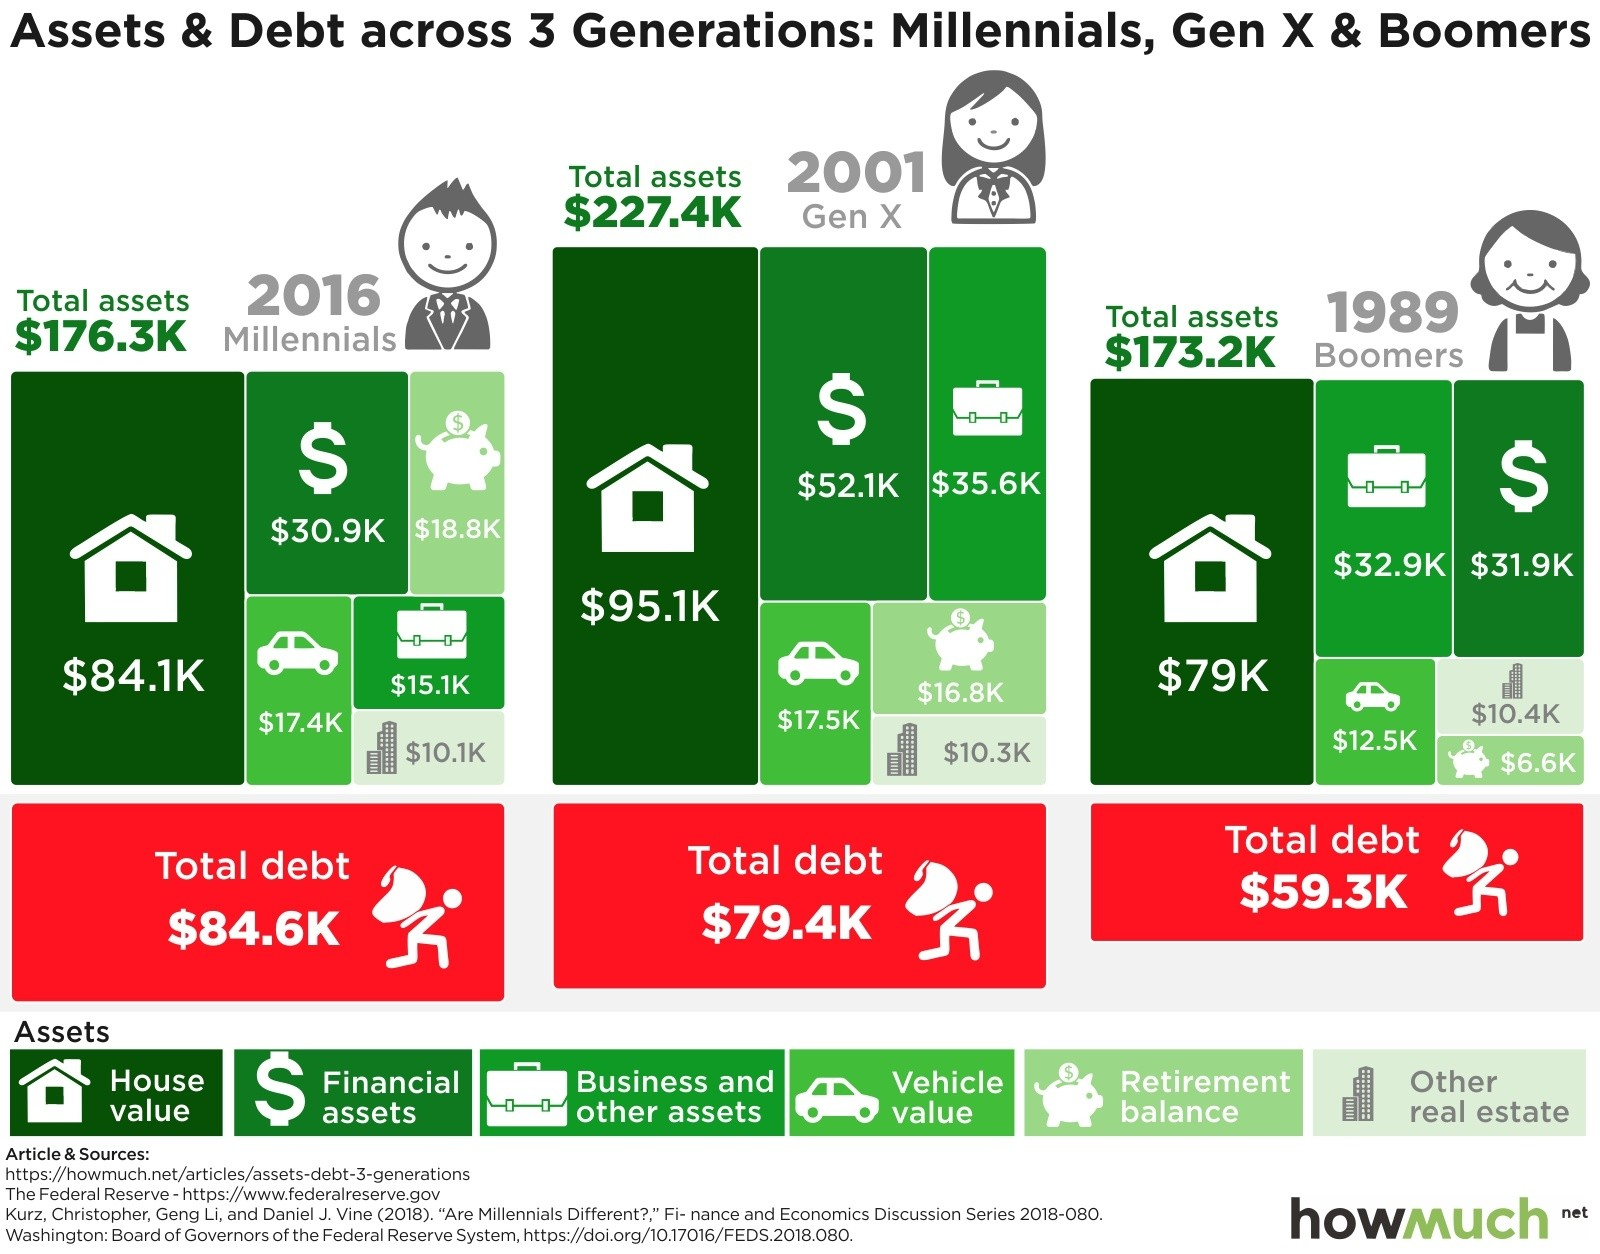 Assets and debts for millennials, boomers and gen xers